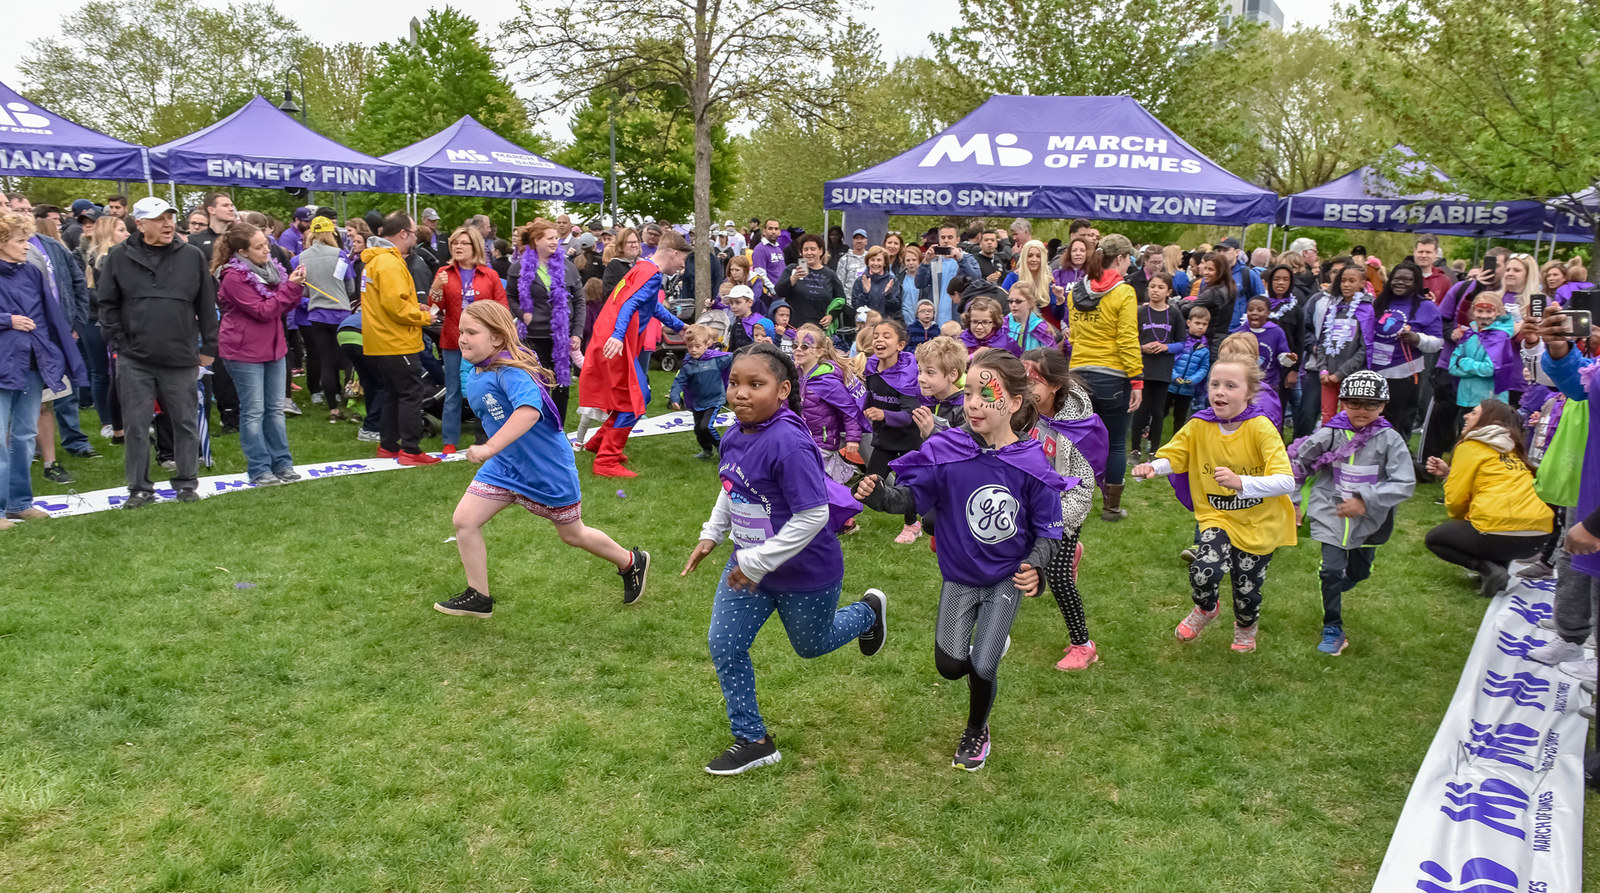 a bunch of children running in a march of dimes event